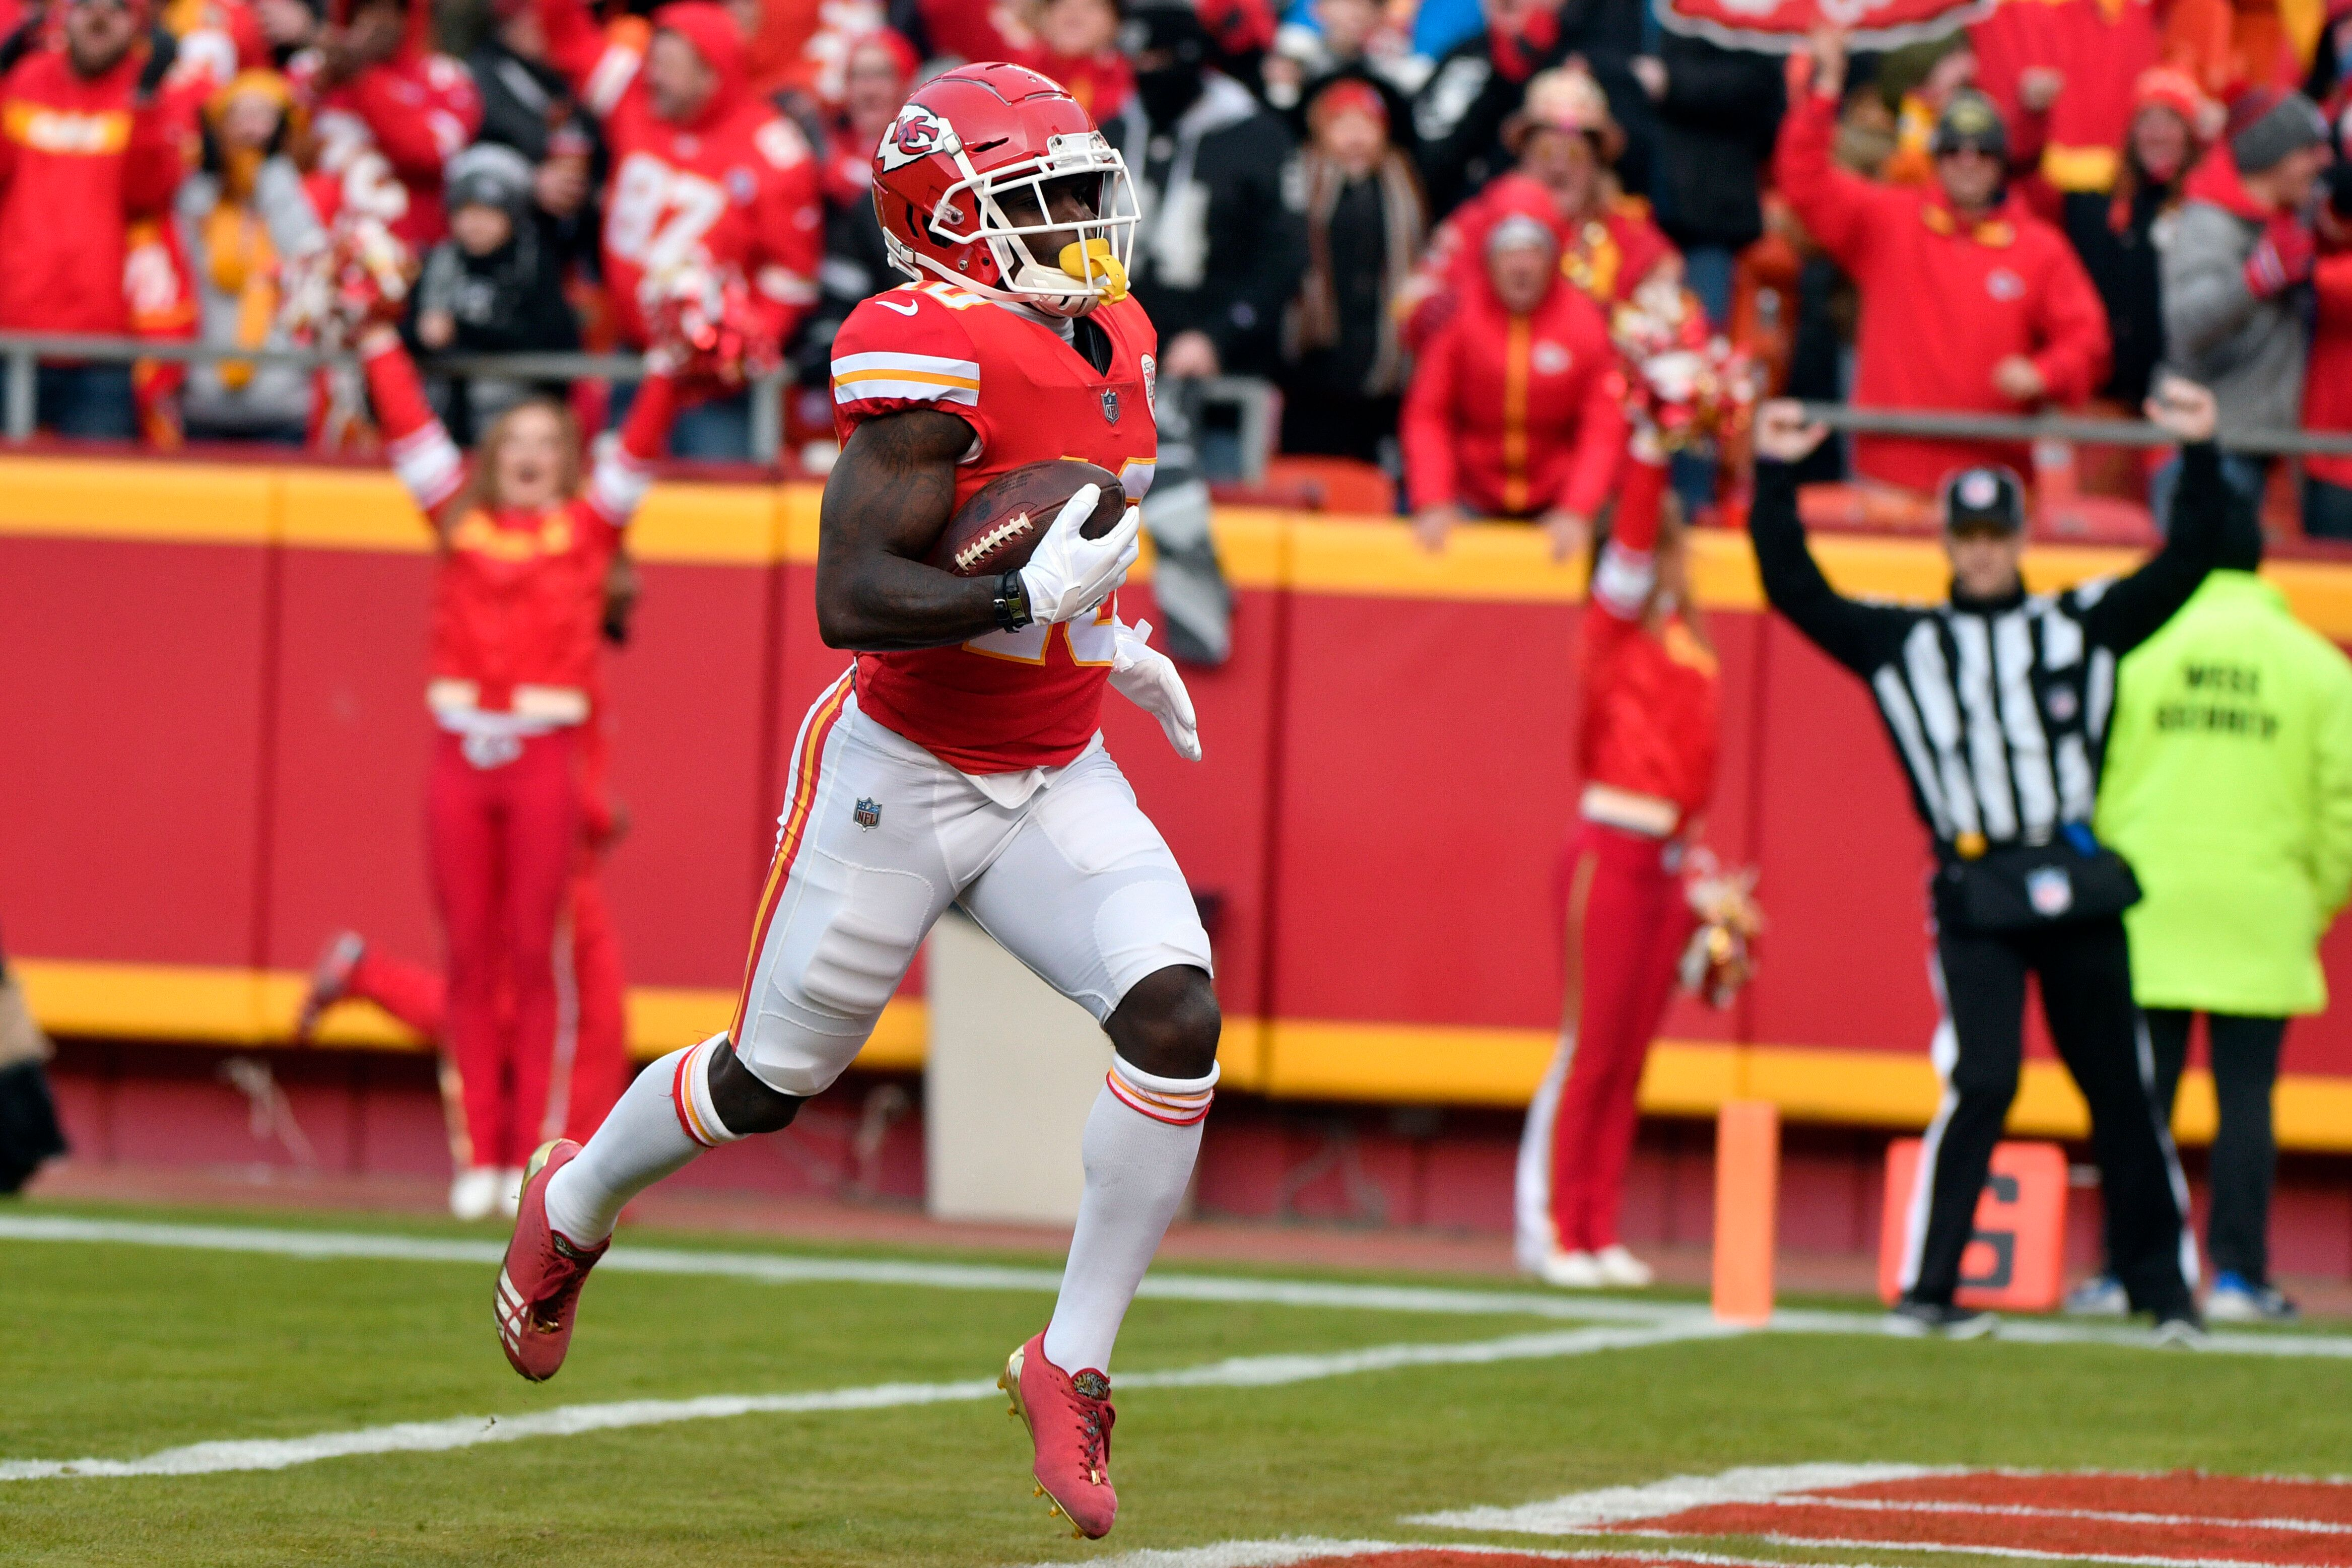 Kansas City Chiefs wide receiver Tyreek Hill (10) runs into the end zone for a touchdown during the first half of an NFL football game against the Oakland Raiders in Kansas City, Mo., Sunday, Dec. 30, 2018. (AP Photo/Ed Zurga)